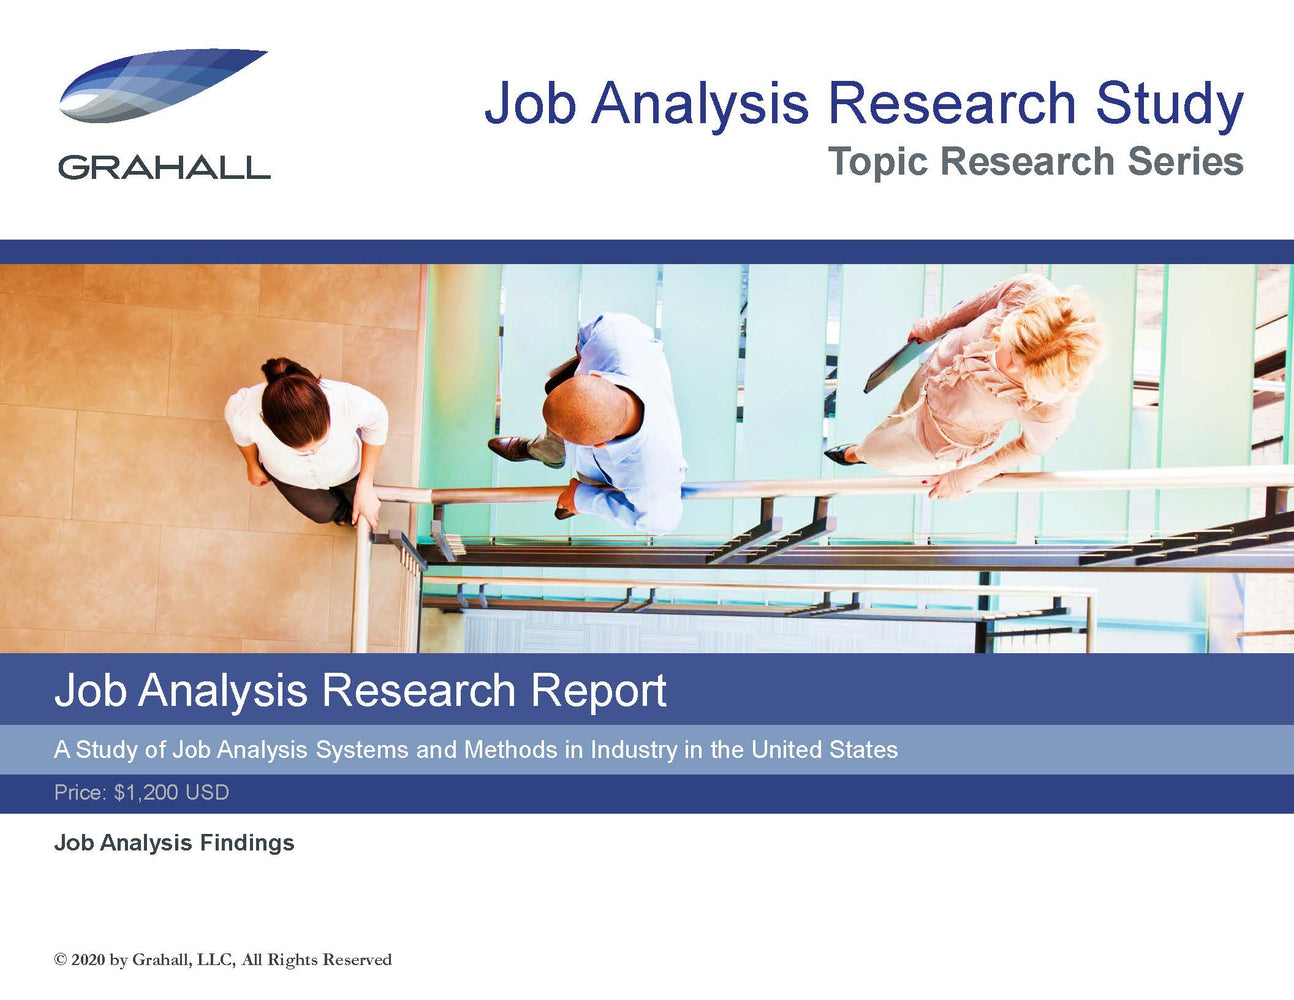 Job Analysis Research Report: A Study of Job Analysis Systems and Methods in the United States